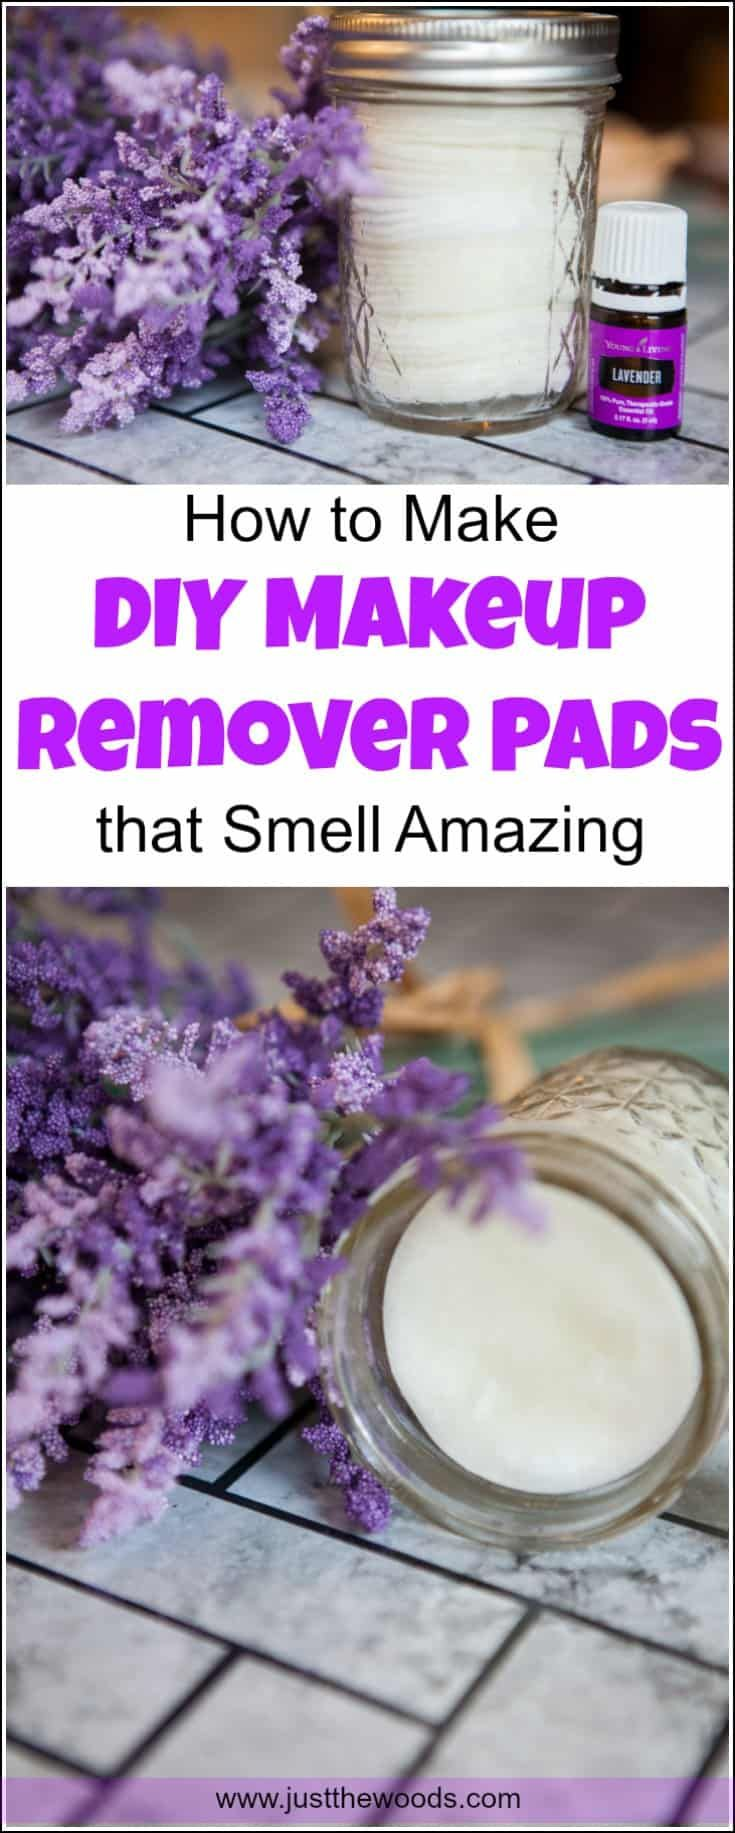 How To Make Diy Makeup Remover Pads That Smell Amazing How to Make DIY Makeup Remover Pads that Smell Amazing Diy Makeup diy makeup remover